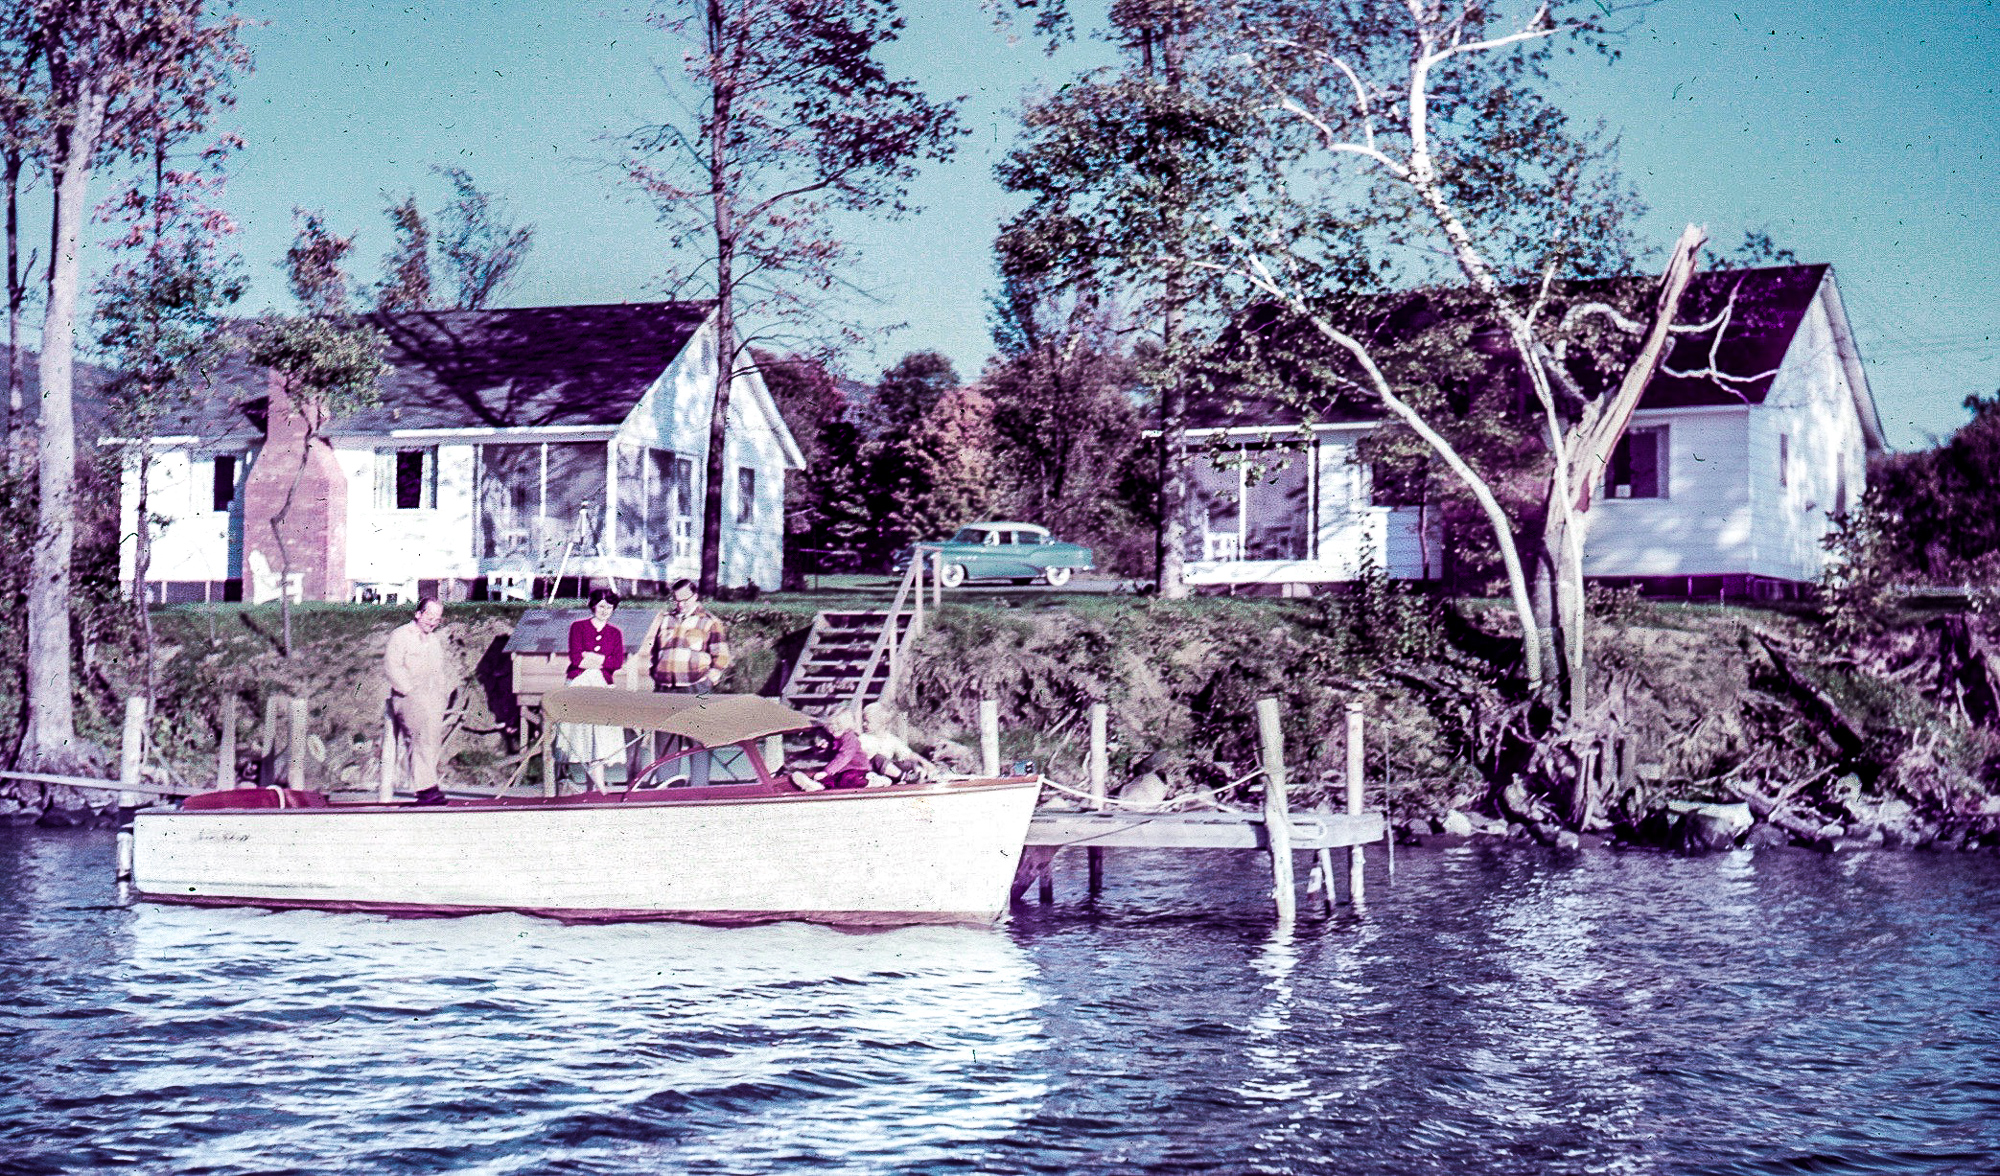 Lake George vacation cabin rental #2 and #3 in 1954 at Takundewide Cottages on Lake George